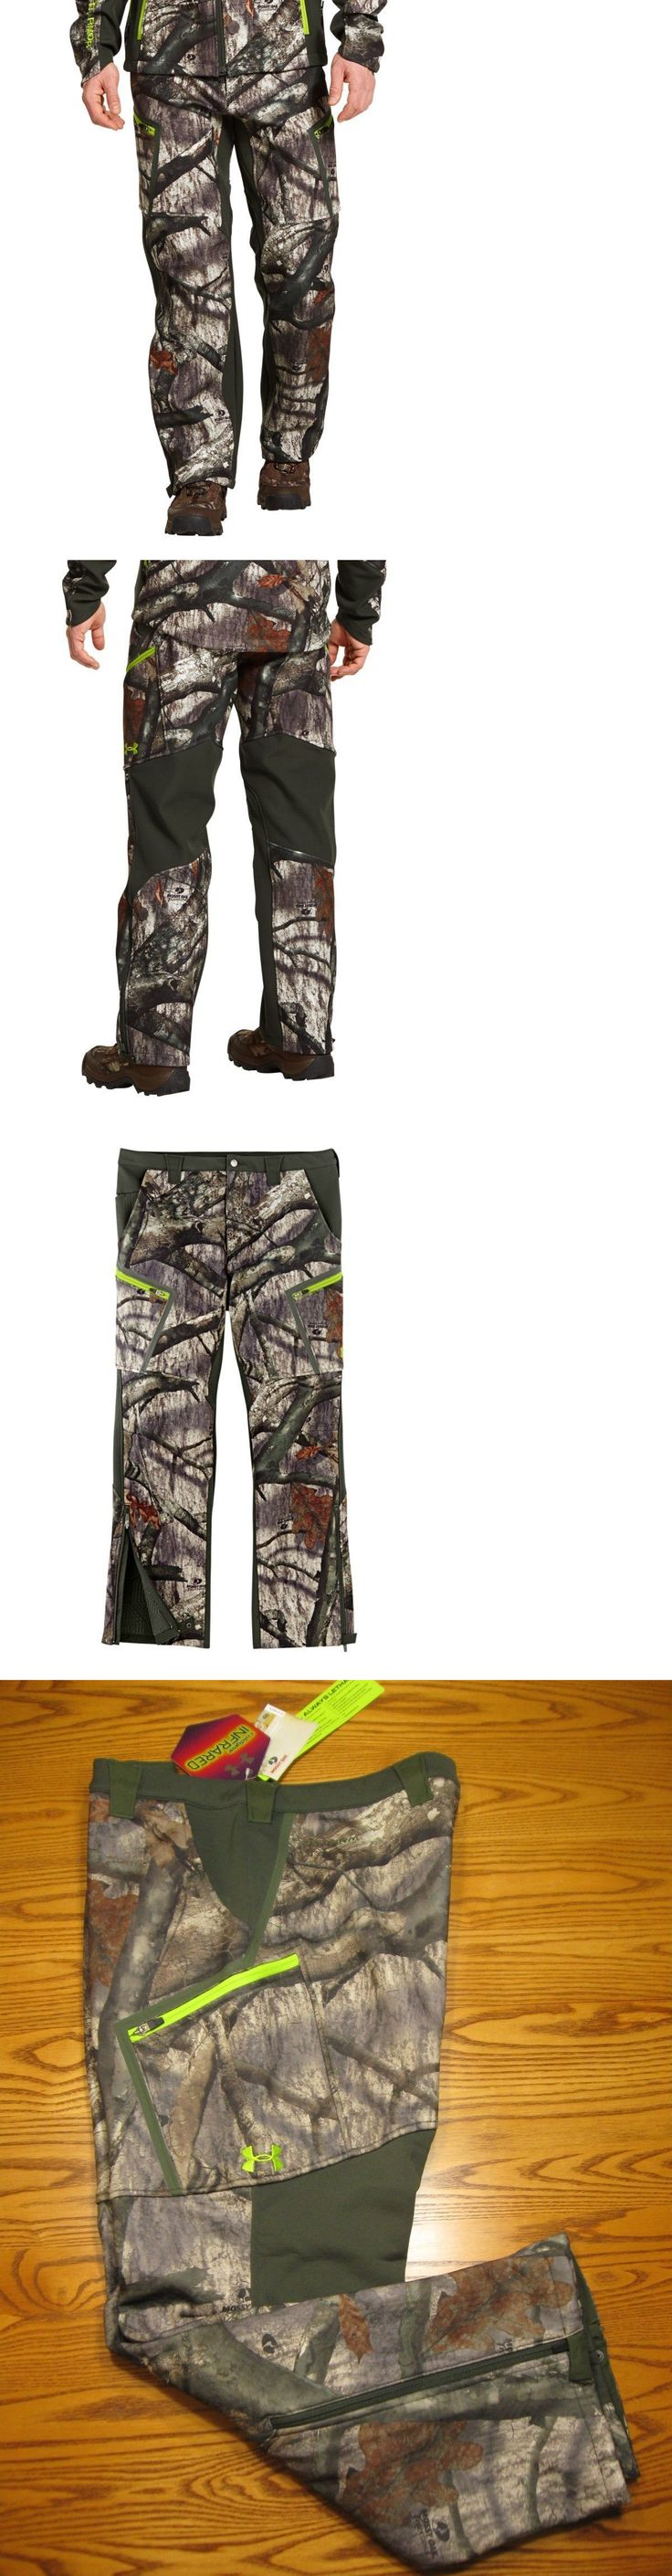 Pants and Bibs 177873: New Under Armour Infrared Storm 31 Pants Mossy Oak Camo 1250543 Mens 38 $180 -> BUY IT NOW ONLY: $59.95 on eBay!